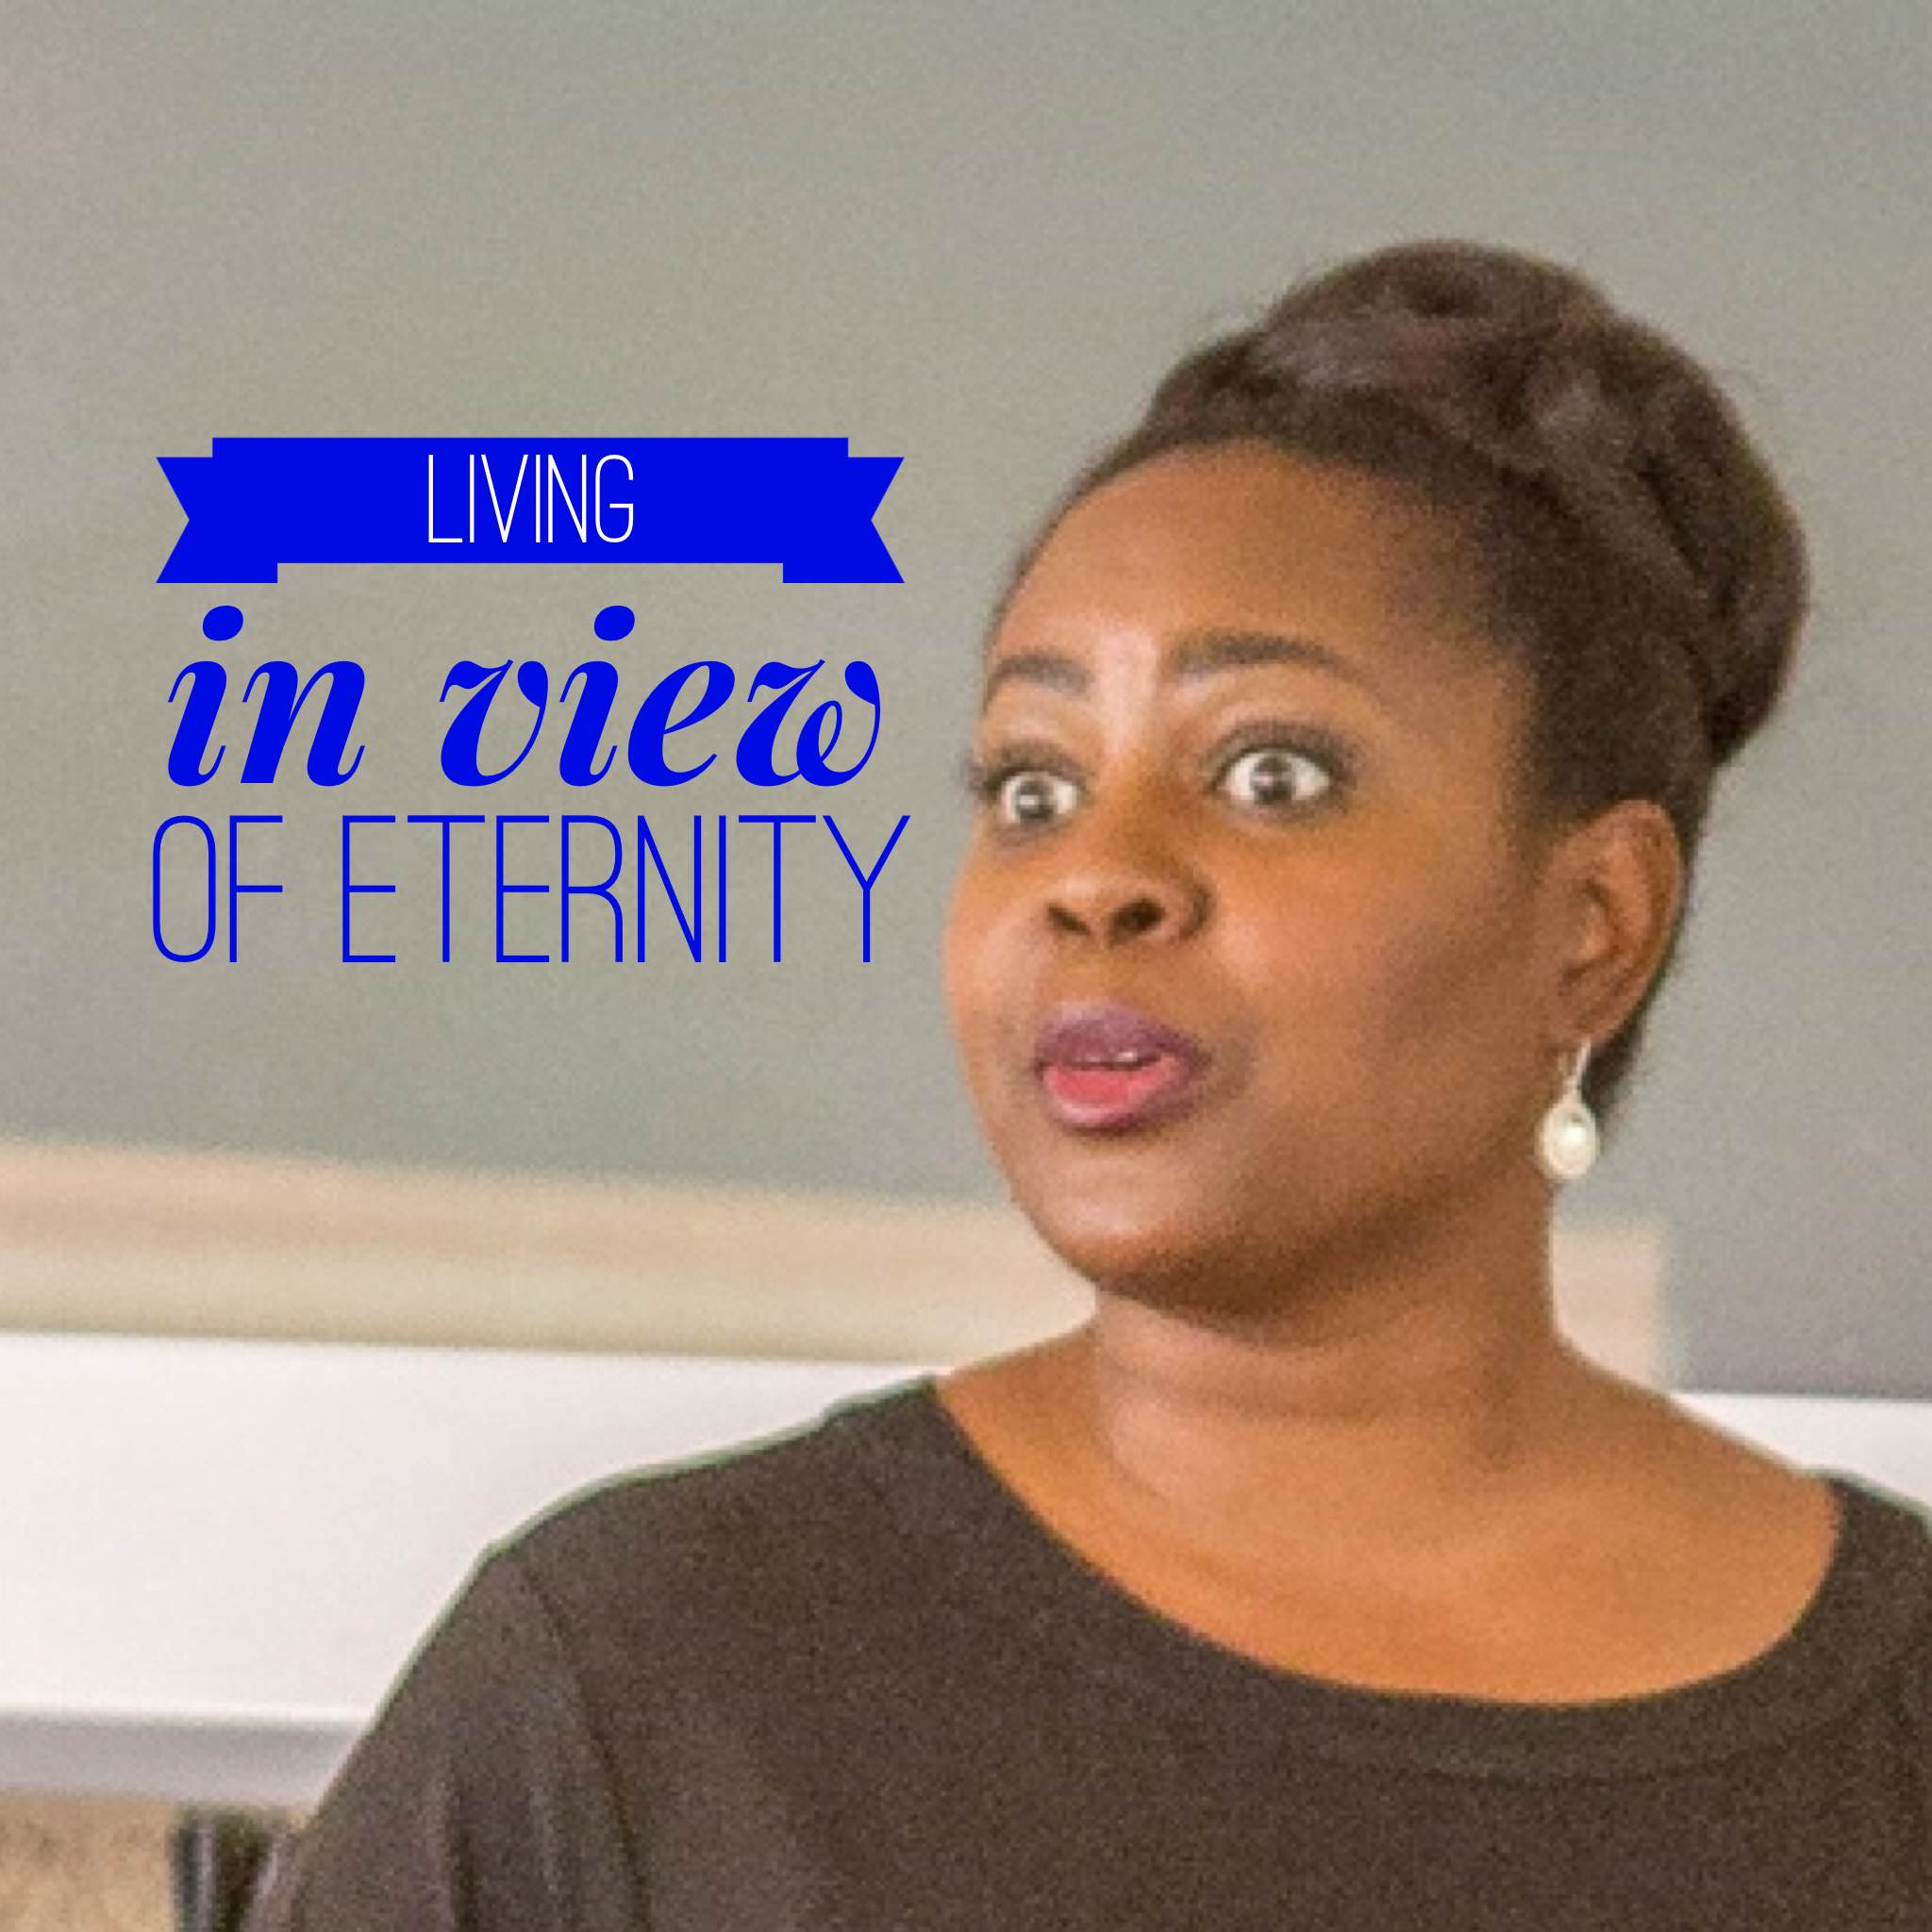 Living in view of Eternity